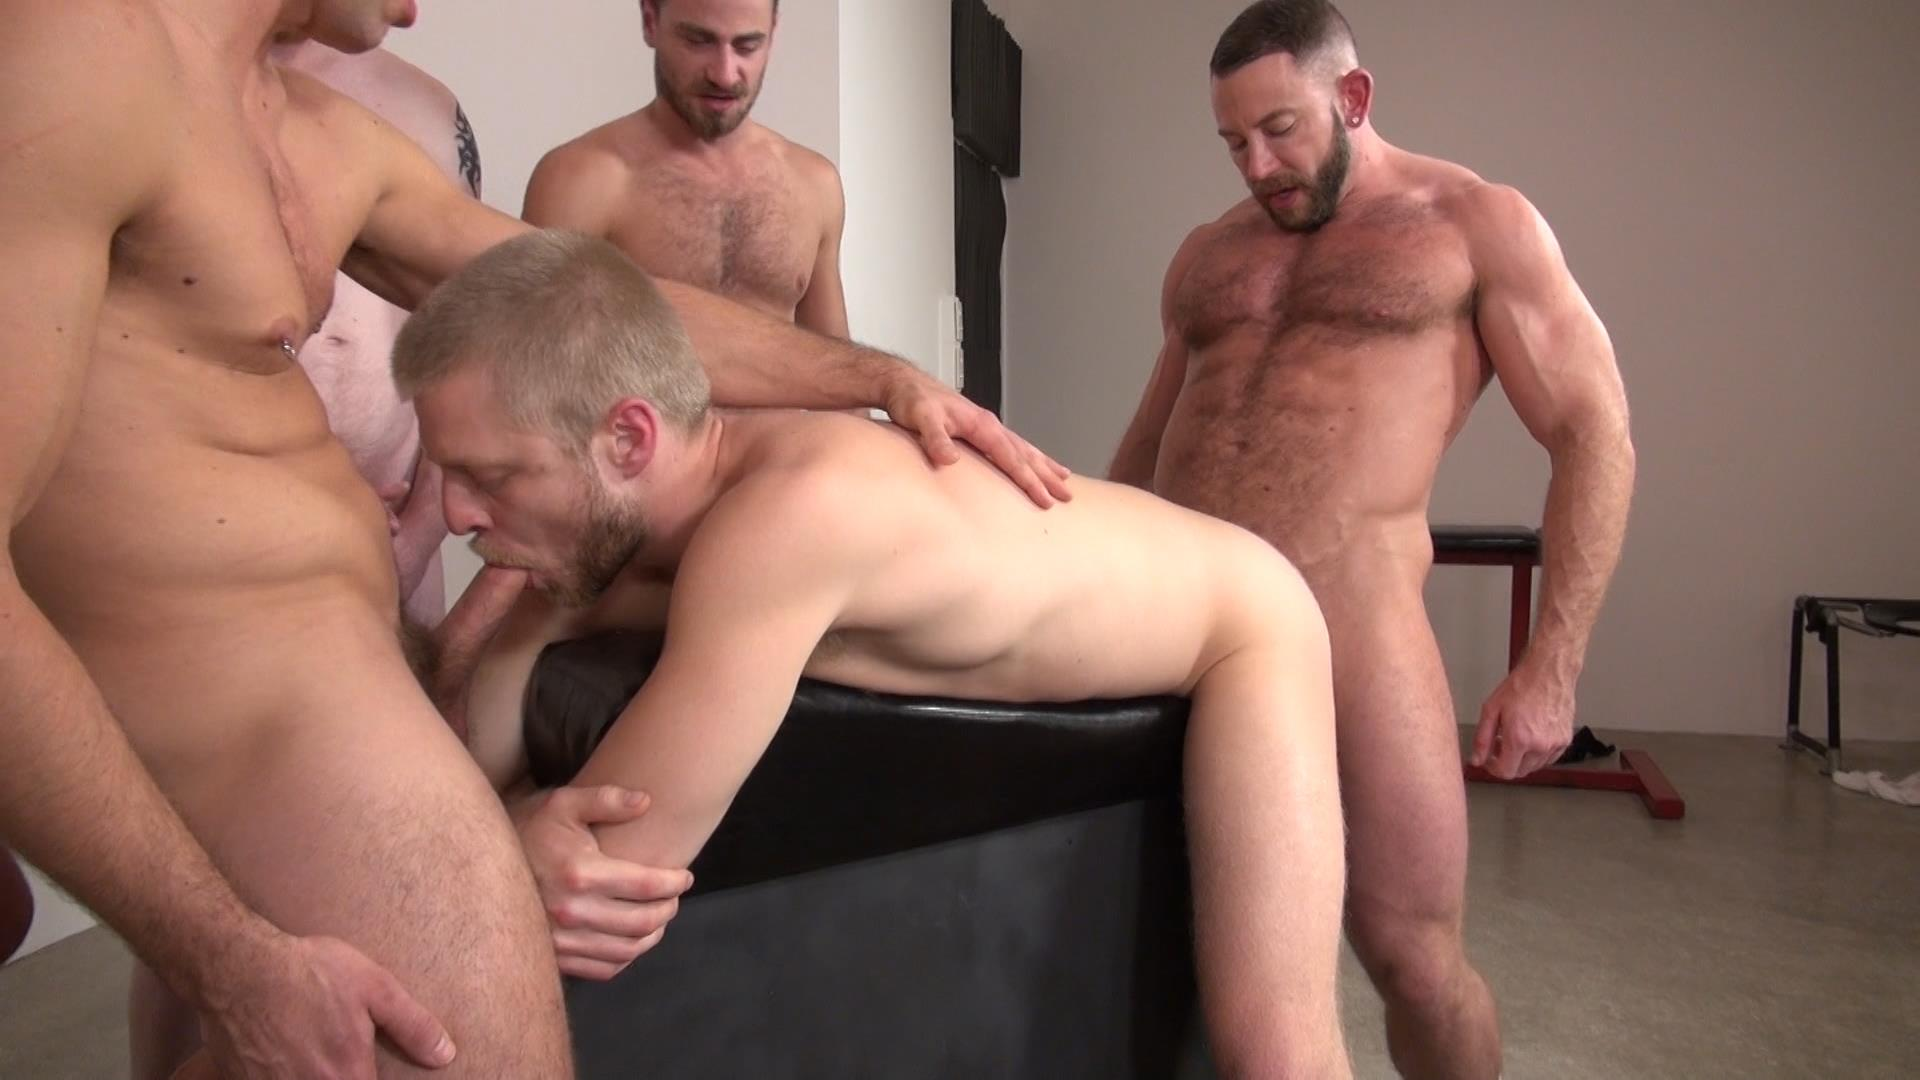 Raw-and-Rough-Bareback-Gay-Sex-Orgy-Amateur-Gay-Porn-09 Six Hairy Hung Guys Pounding A Bottom At A Bareback Sex Party